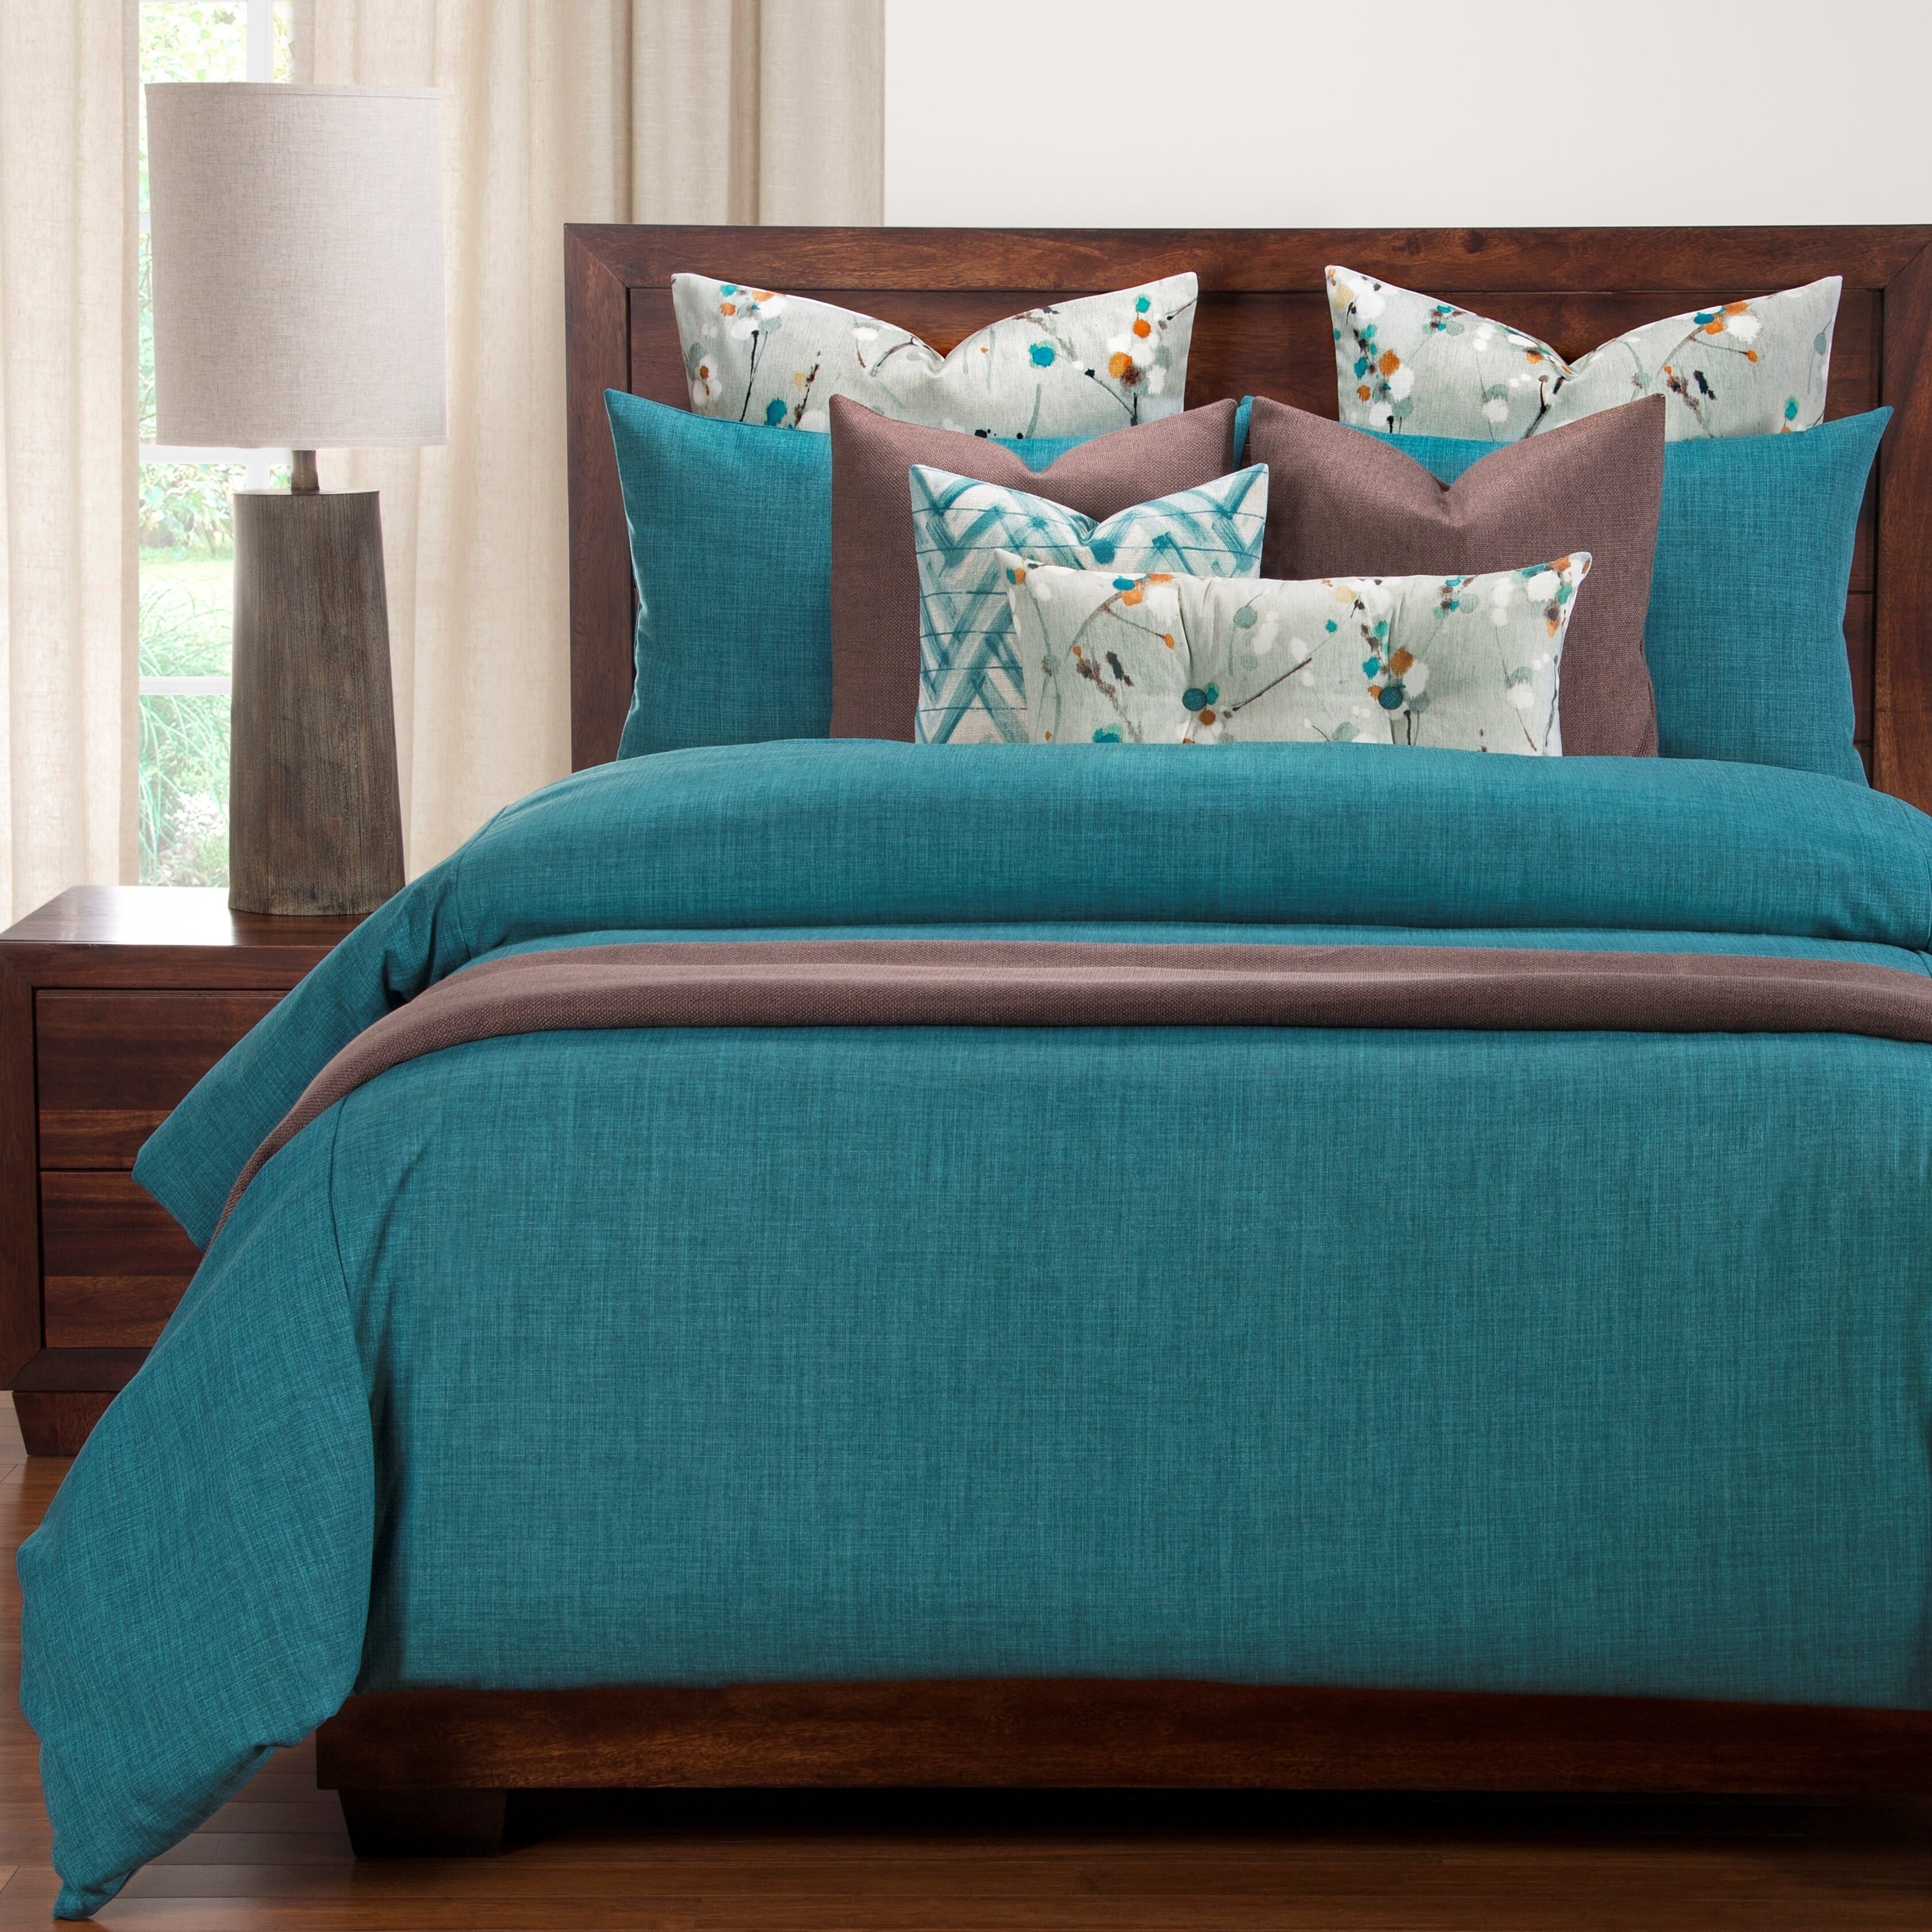 Shop Siscovers Memphis Teal 6 Piece Luxury Duvet And Comforter